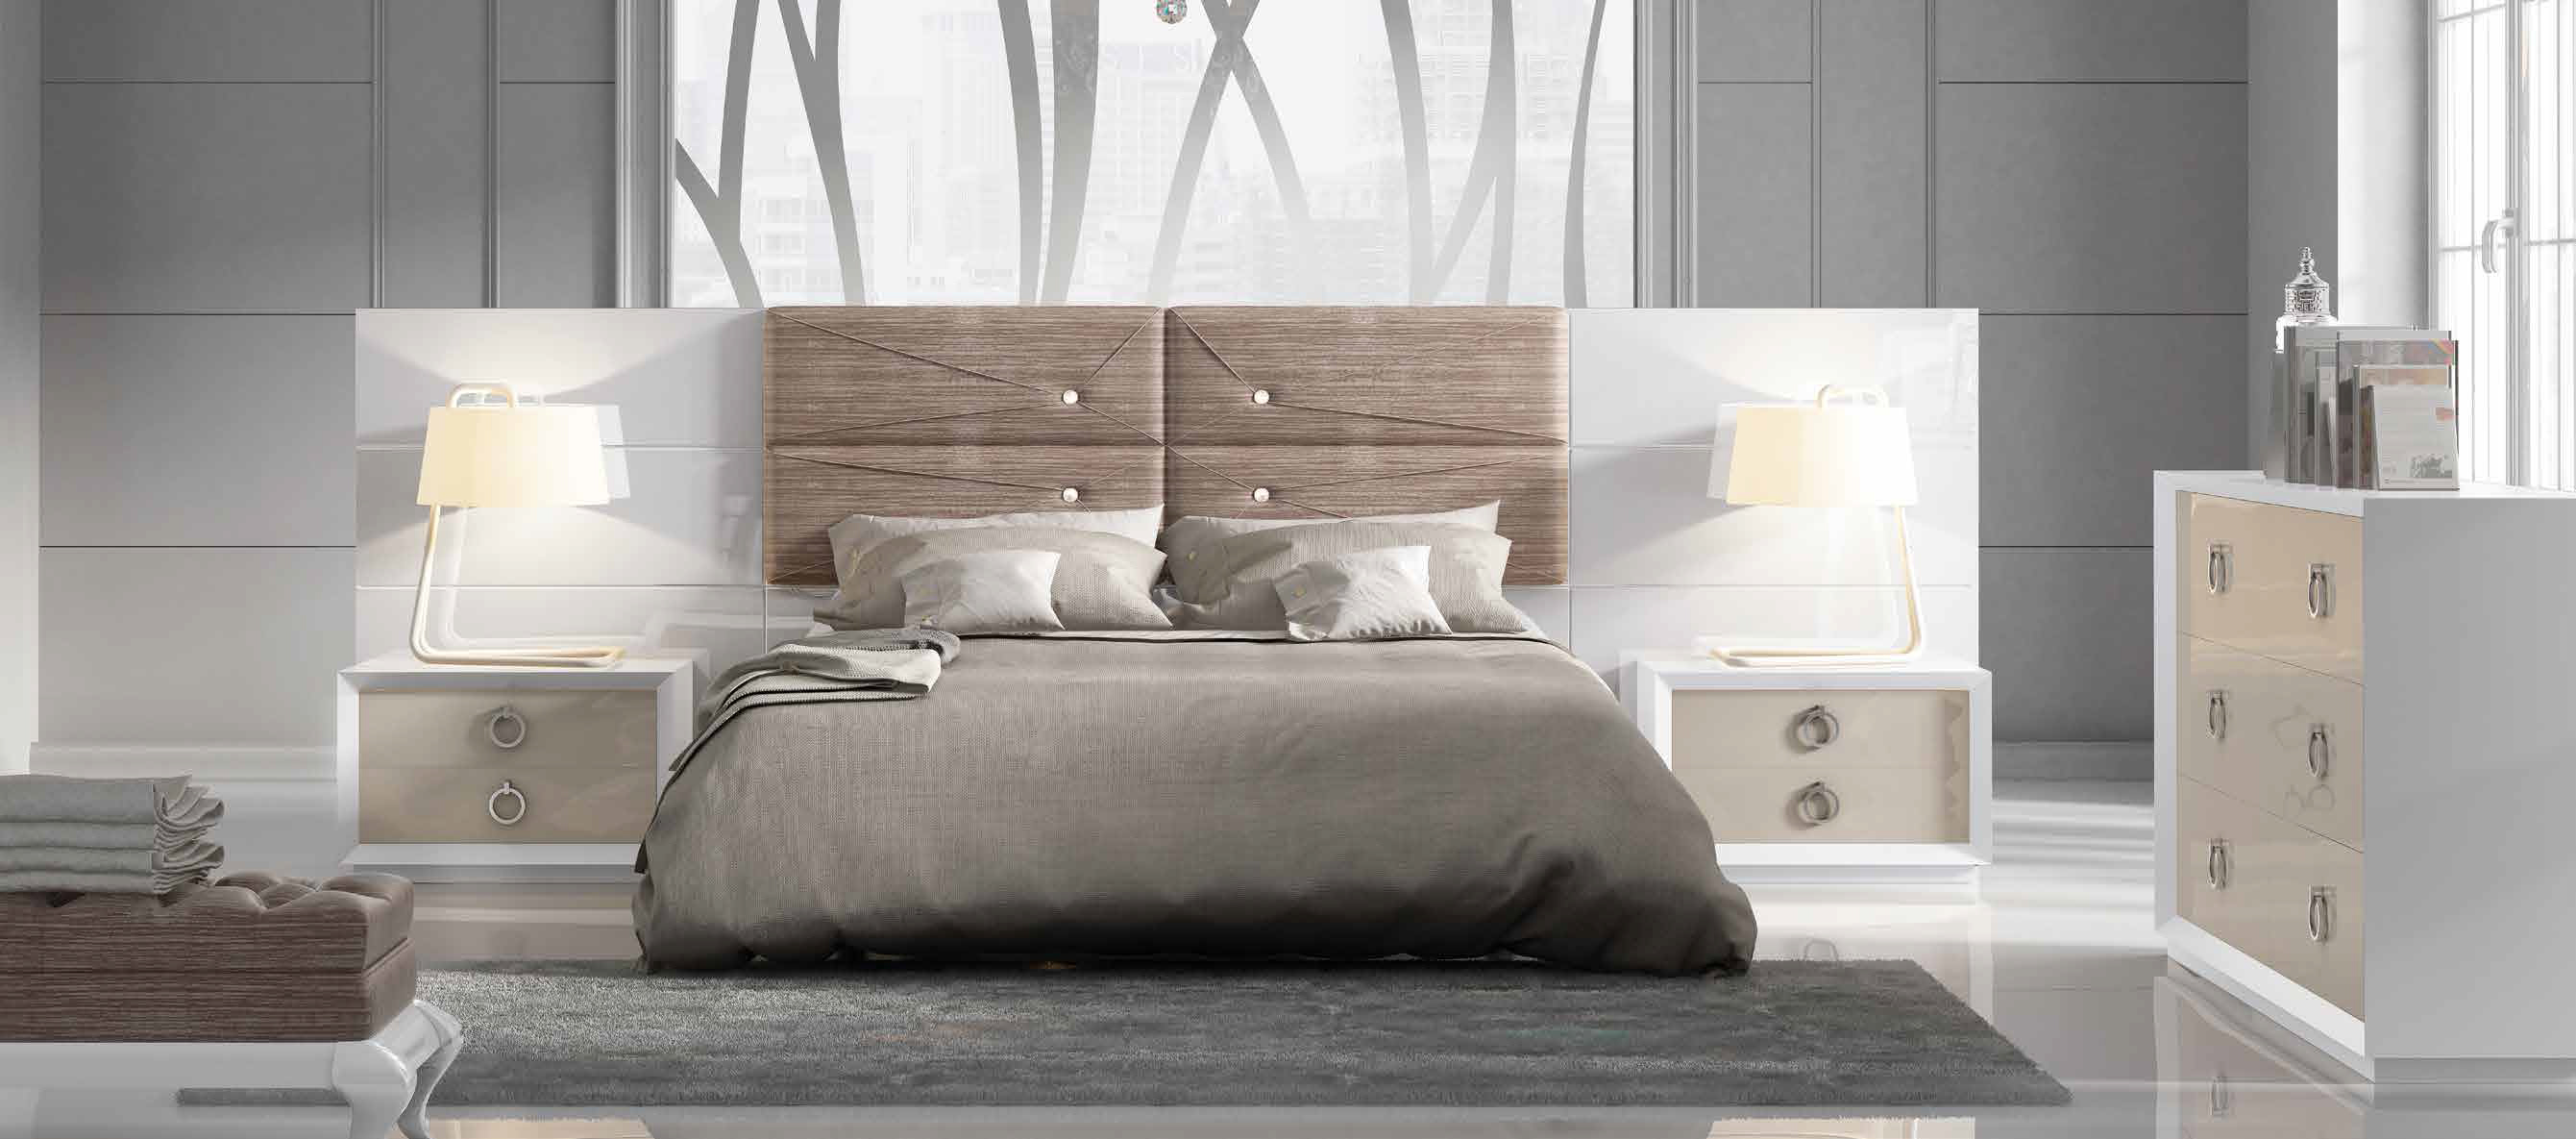 Brands Franco Furniture Bedrooms vol1, Spain DOR 75